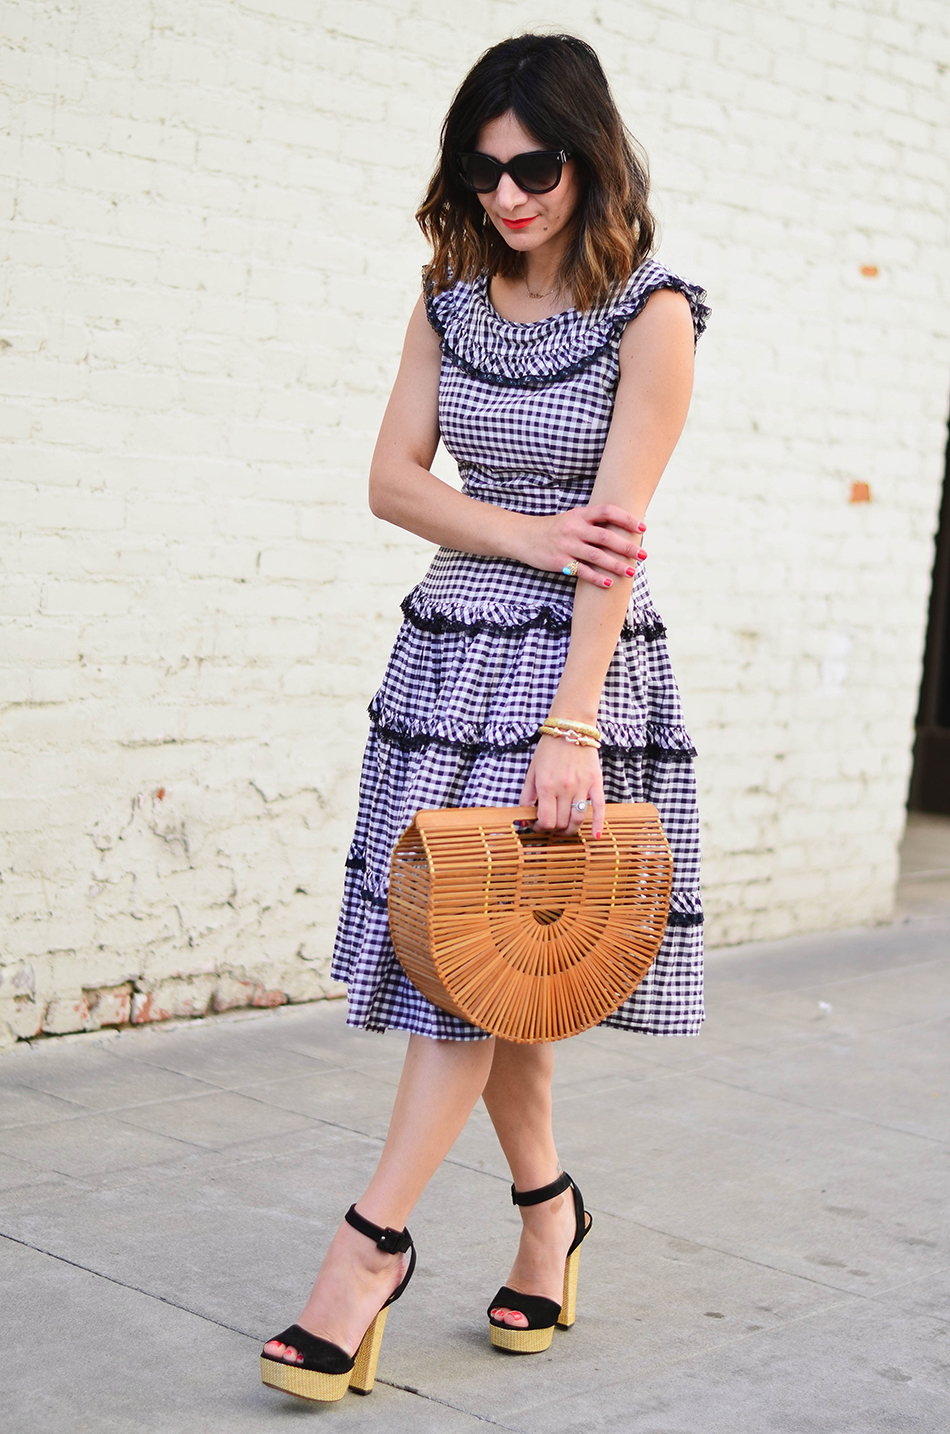 gingham dress for spring